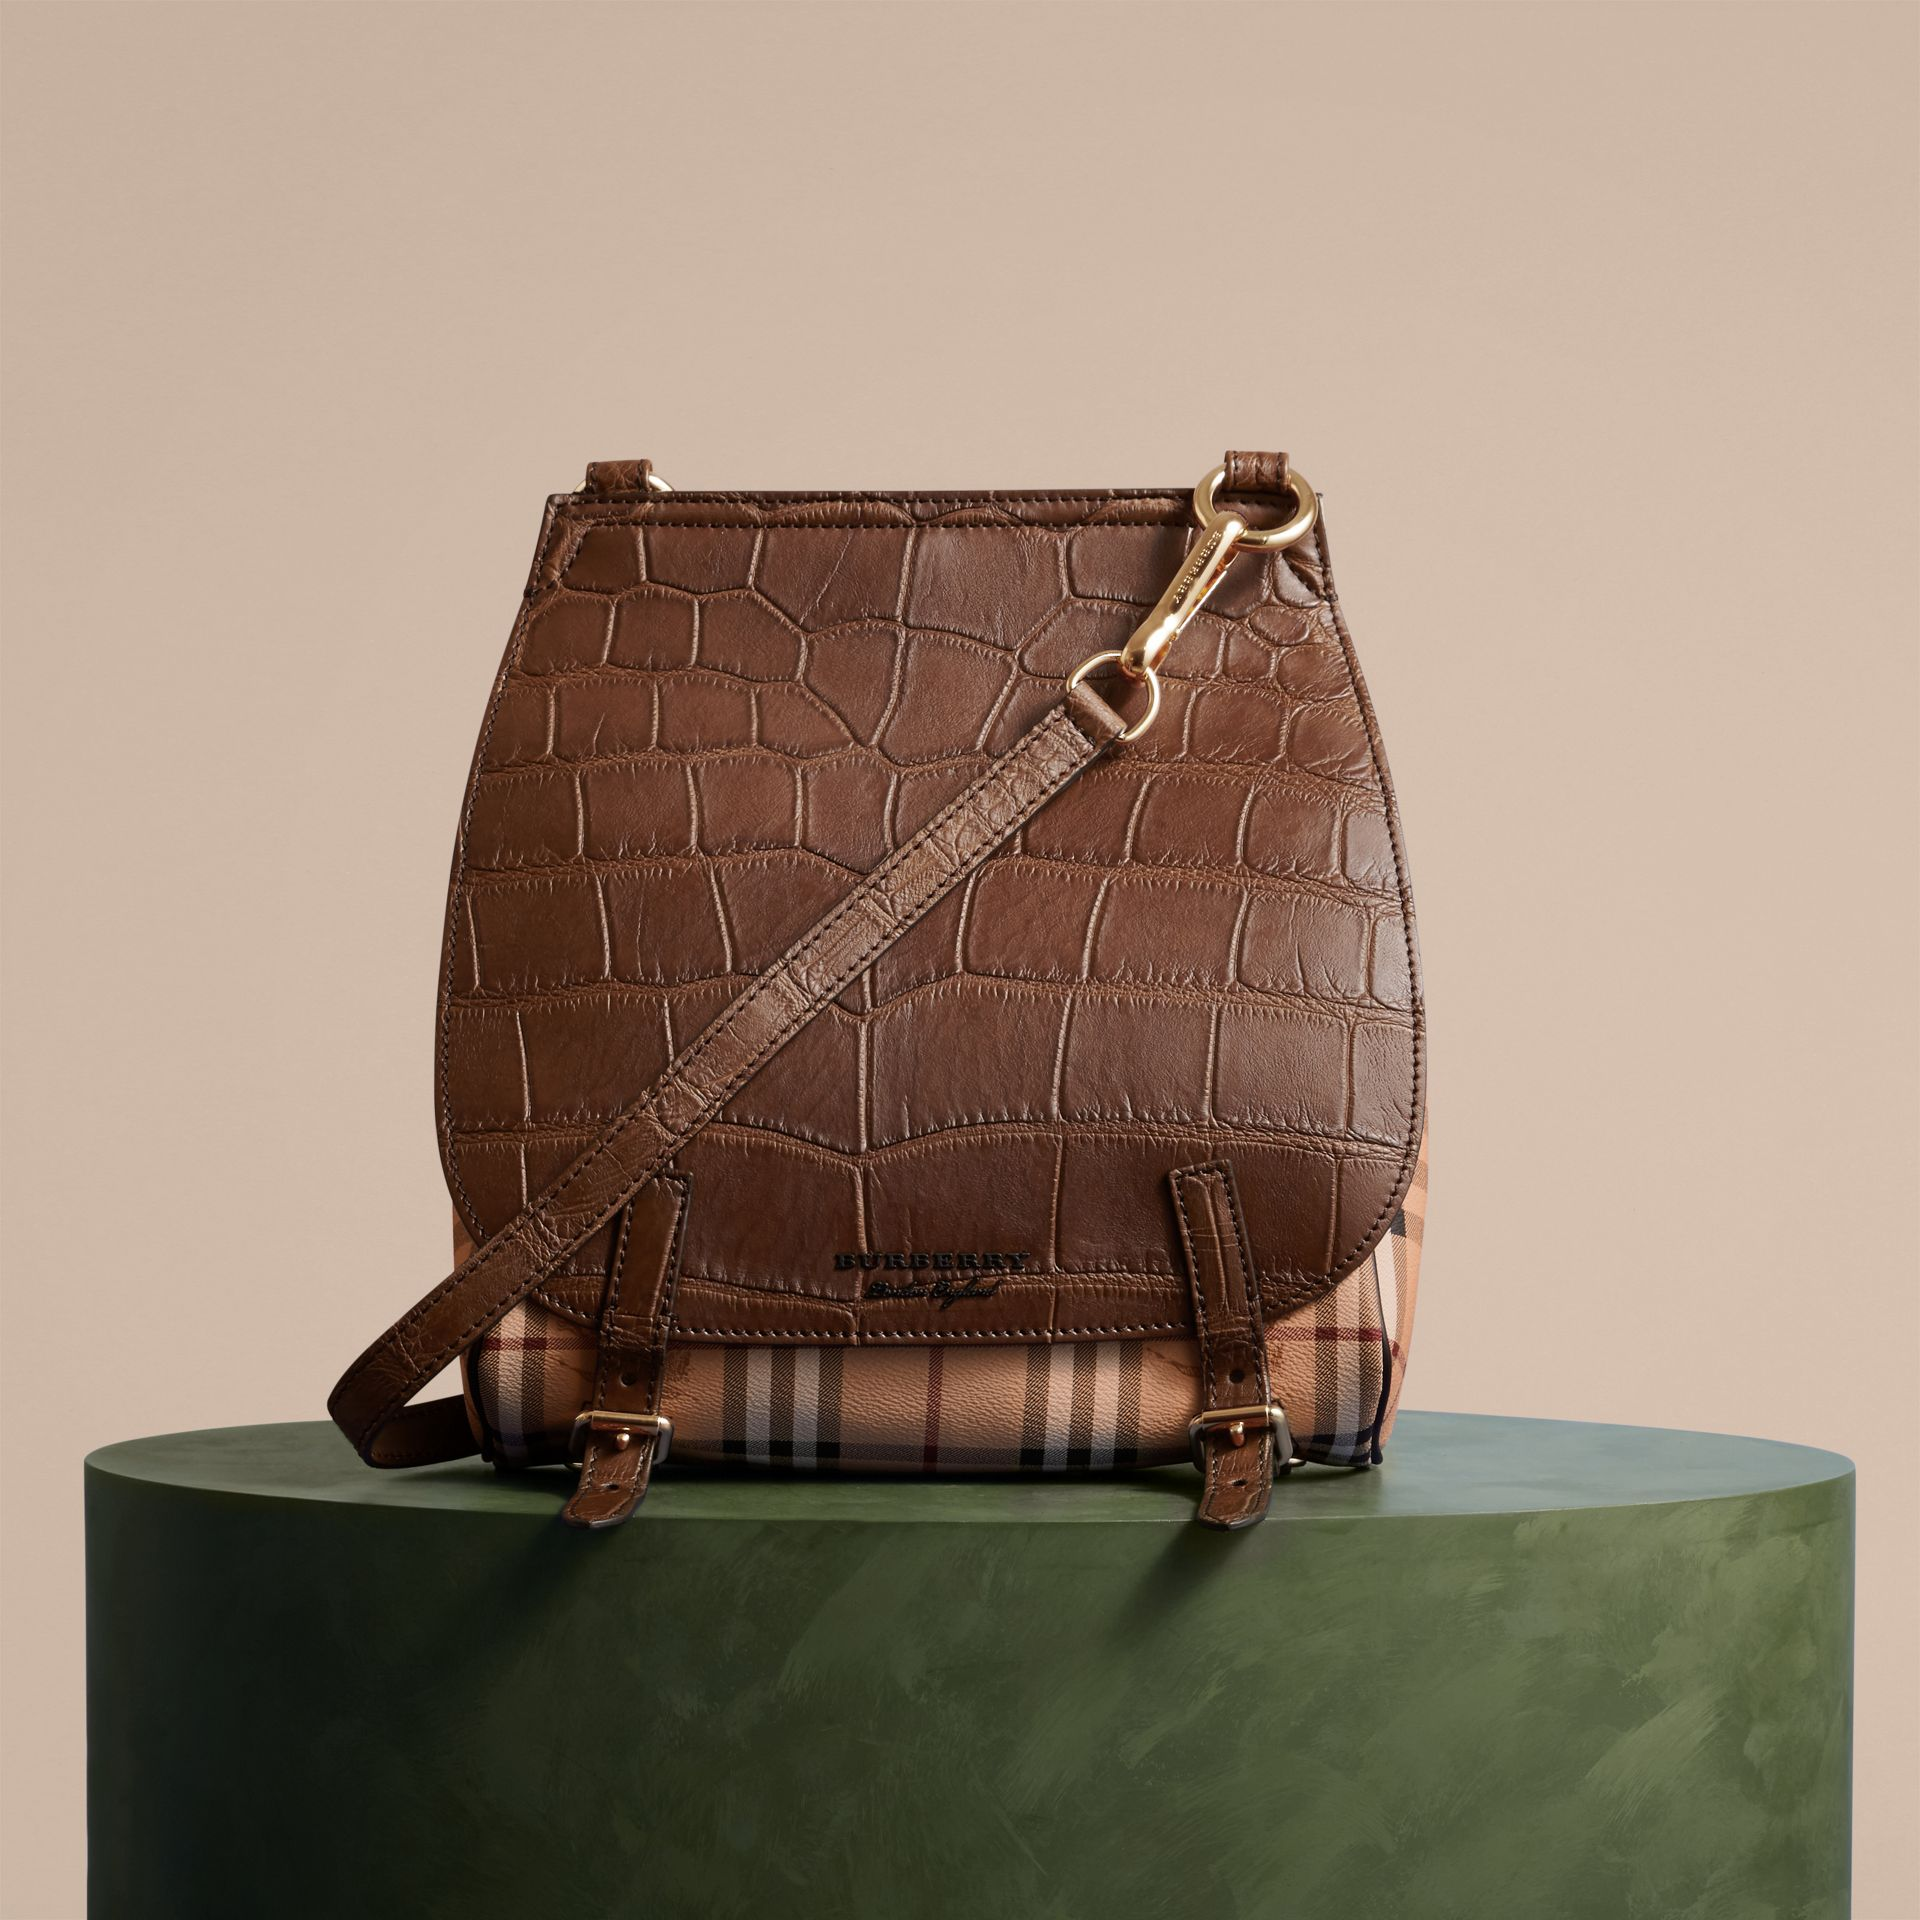 Rotbraun The Small Bridle Bag aus Alligatorleder und Haymarket Check-Gewebe - Galerie-Bild 8